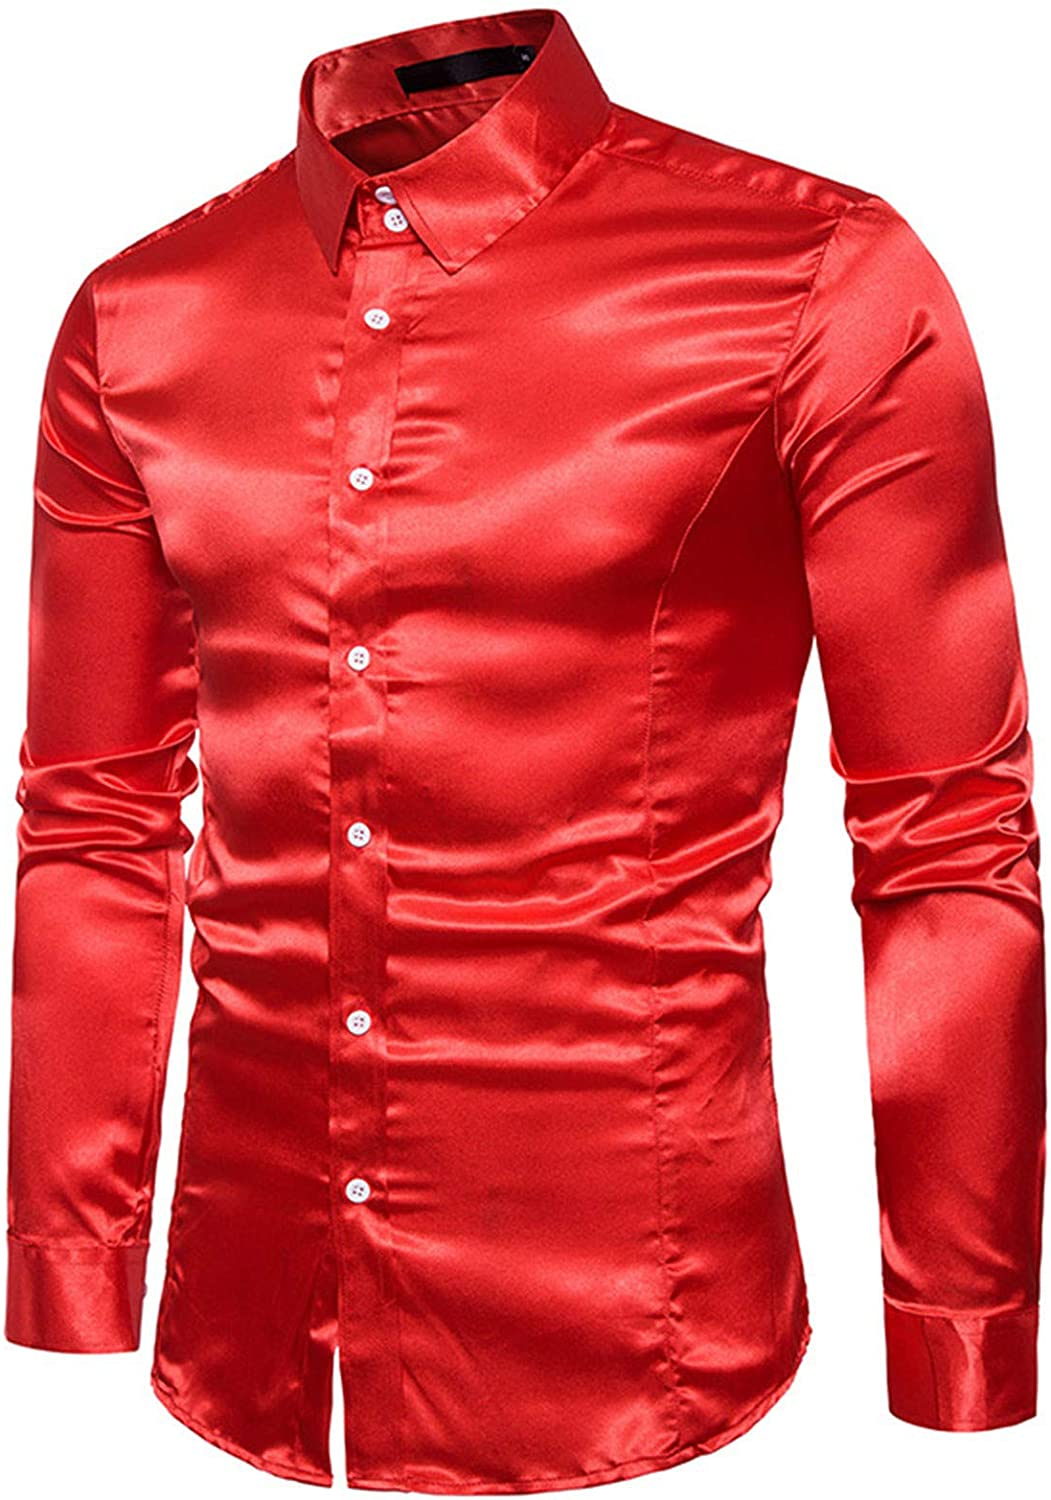 Tpingfe Mans Dress Shirt Luxury Business Casual Tops Button Down Lapel Neck Long Sleeve Top Stylish Blouse Fitted